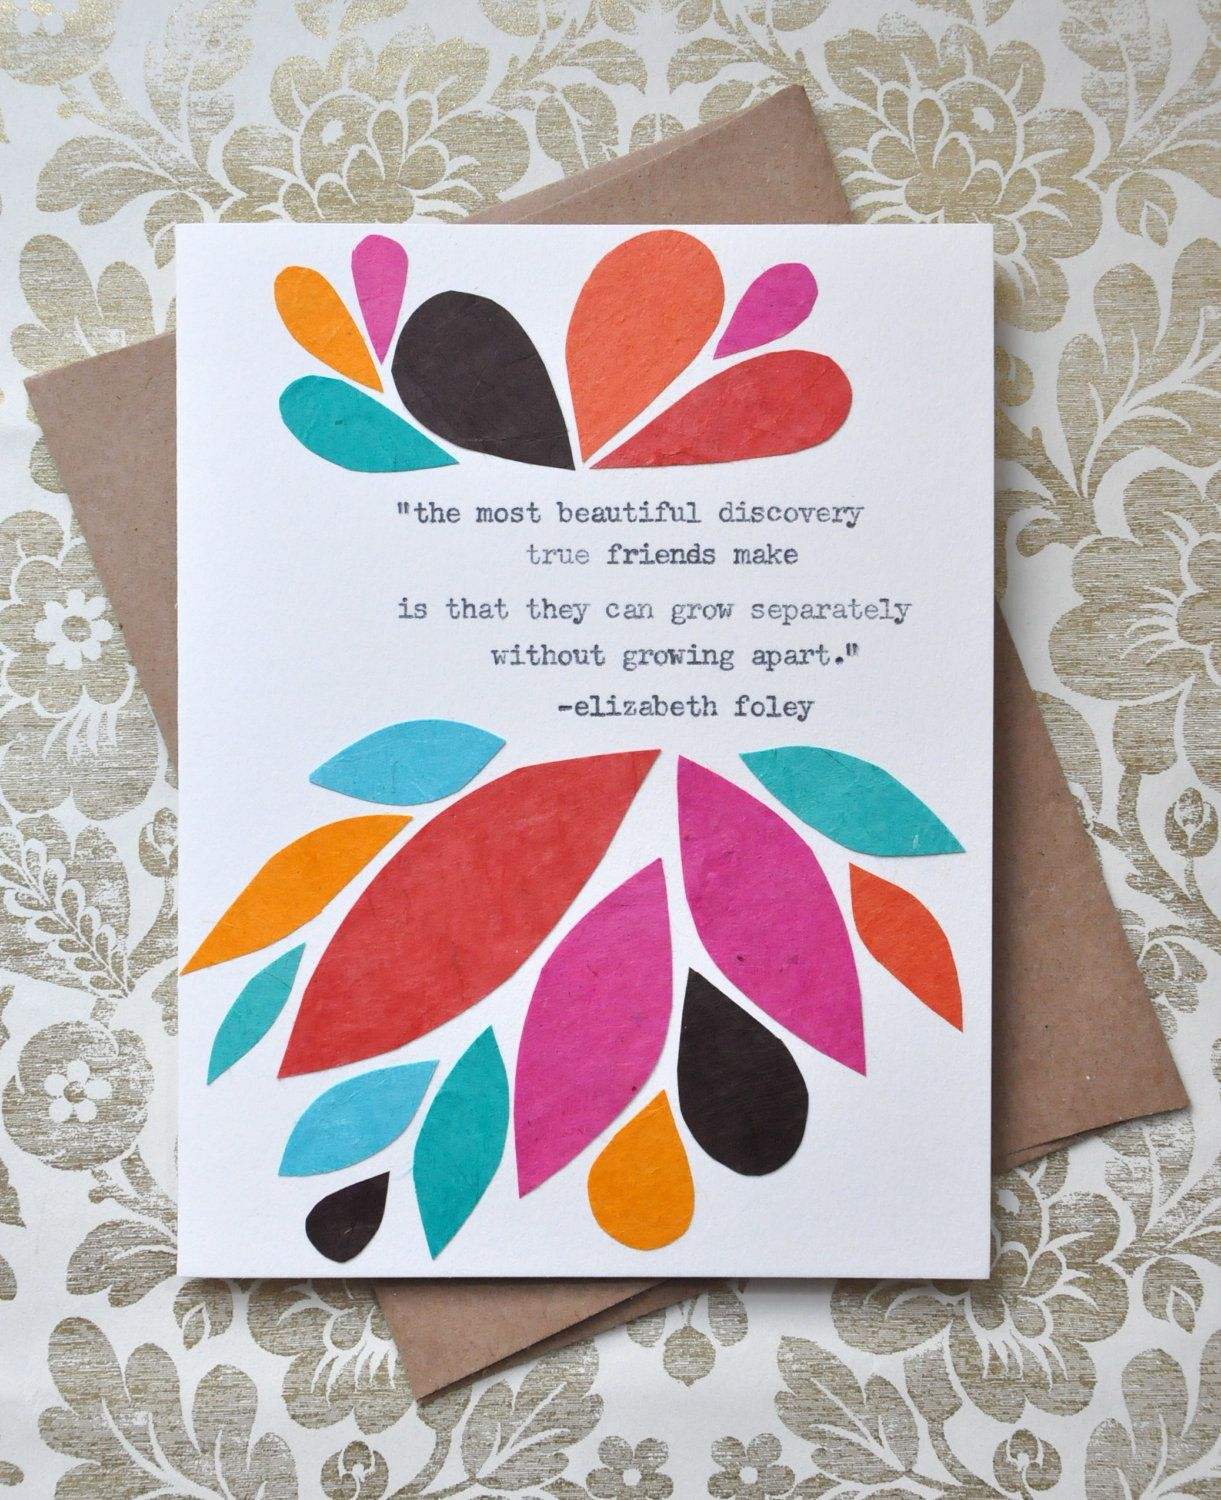 Birthday card handmade greeting card friendship quote abstract birthday card handmade greeting card friendship quote abstract leaves friendship card 850 bookmarktalkfo Gallery